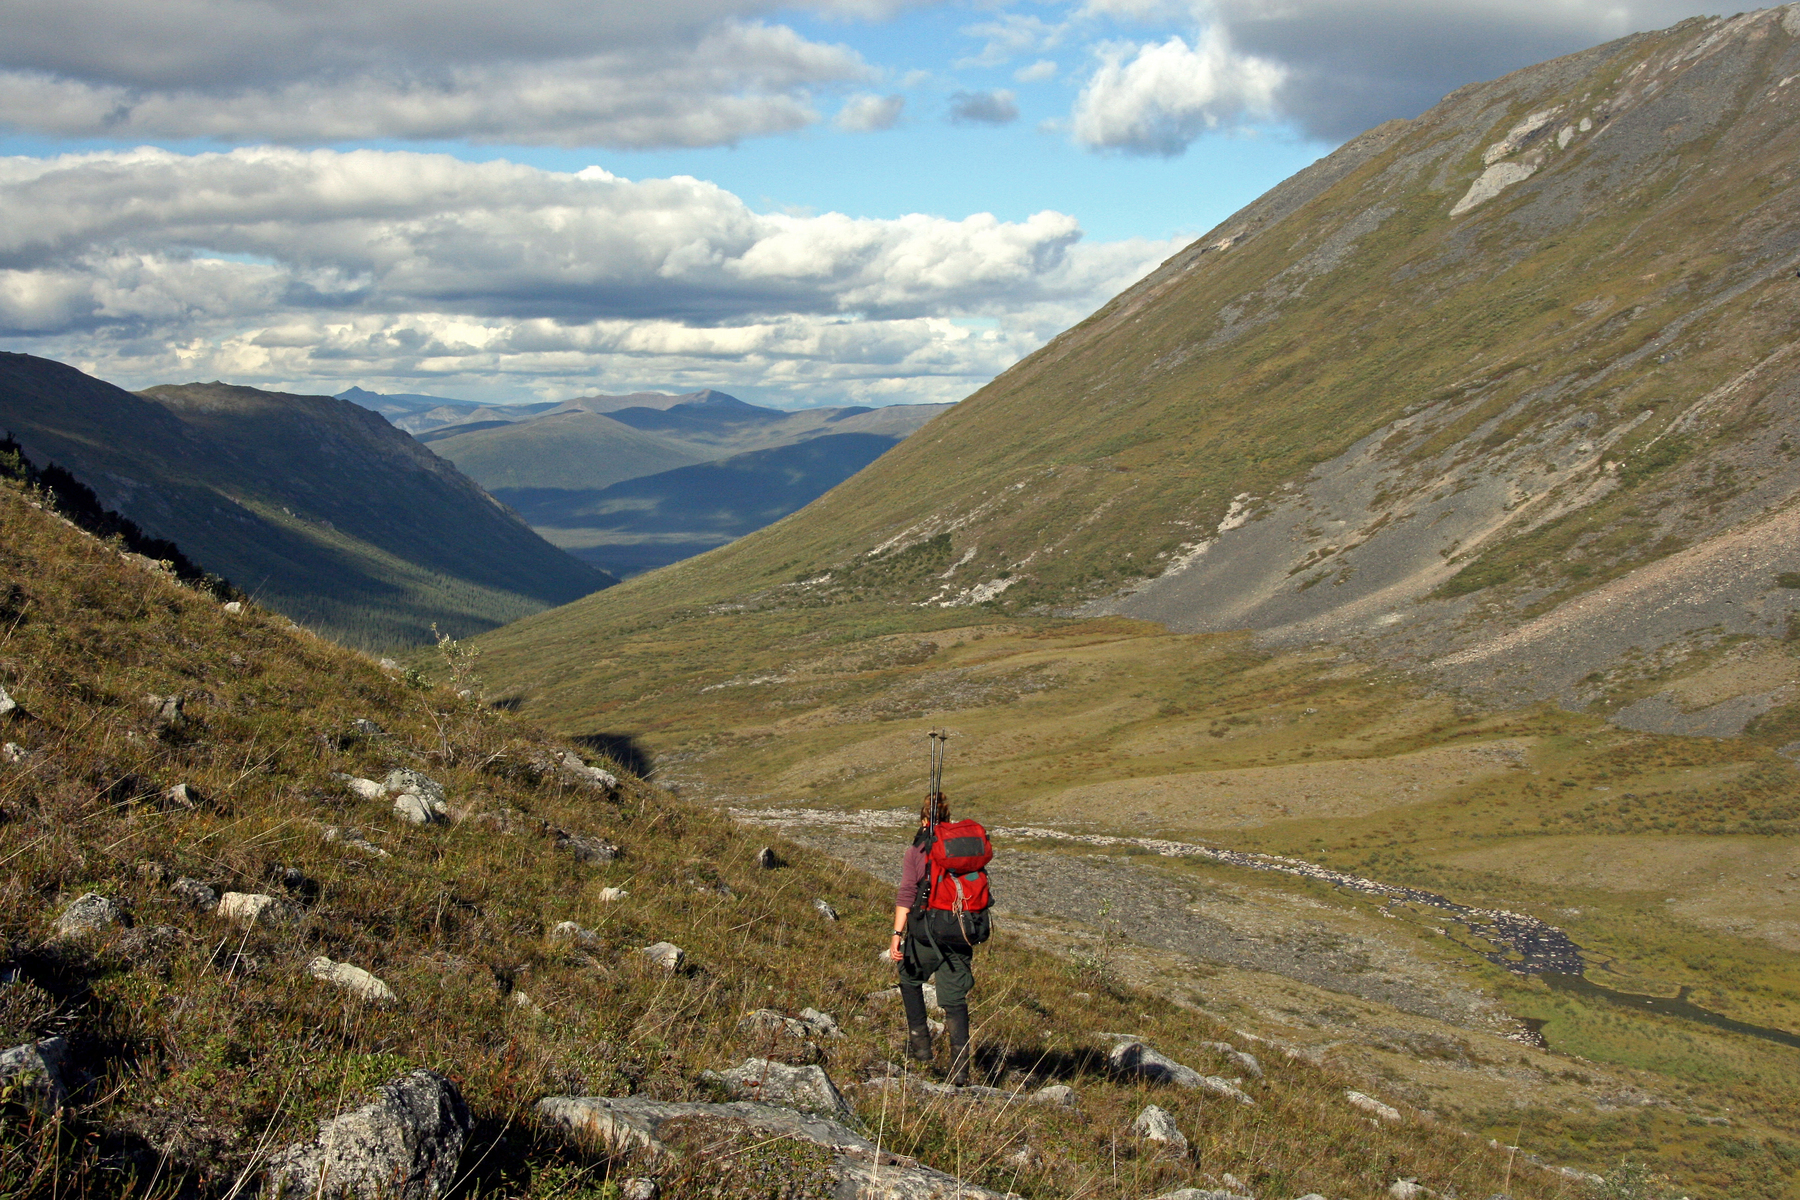 backpacking in the Arrigetch Peaks, Gates of the Arctic National Park, Alaska